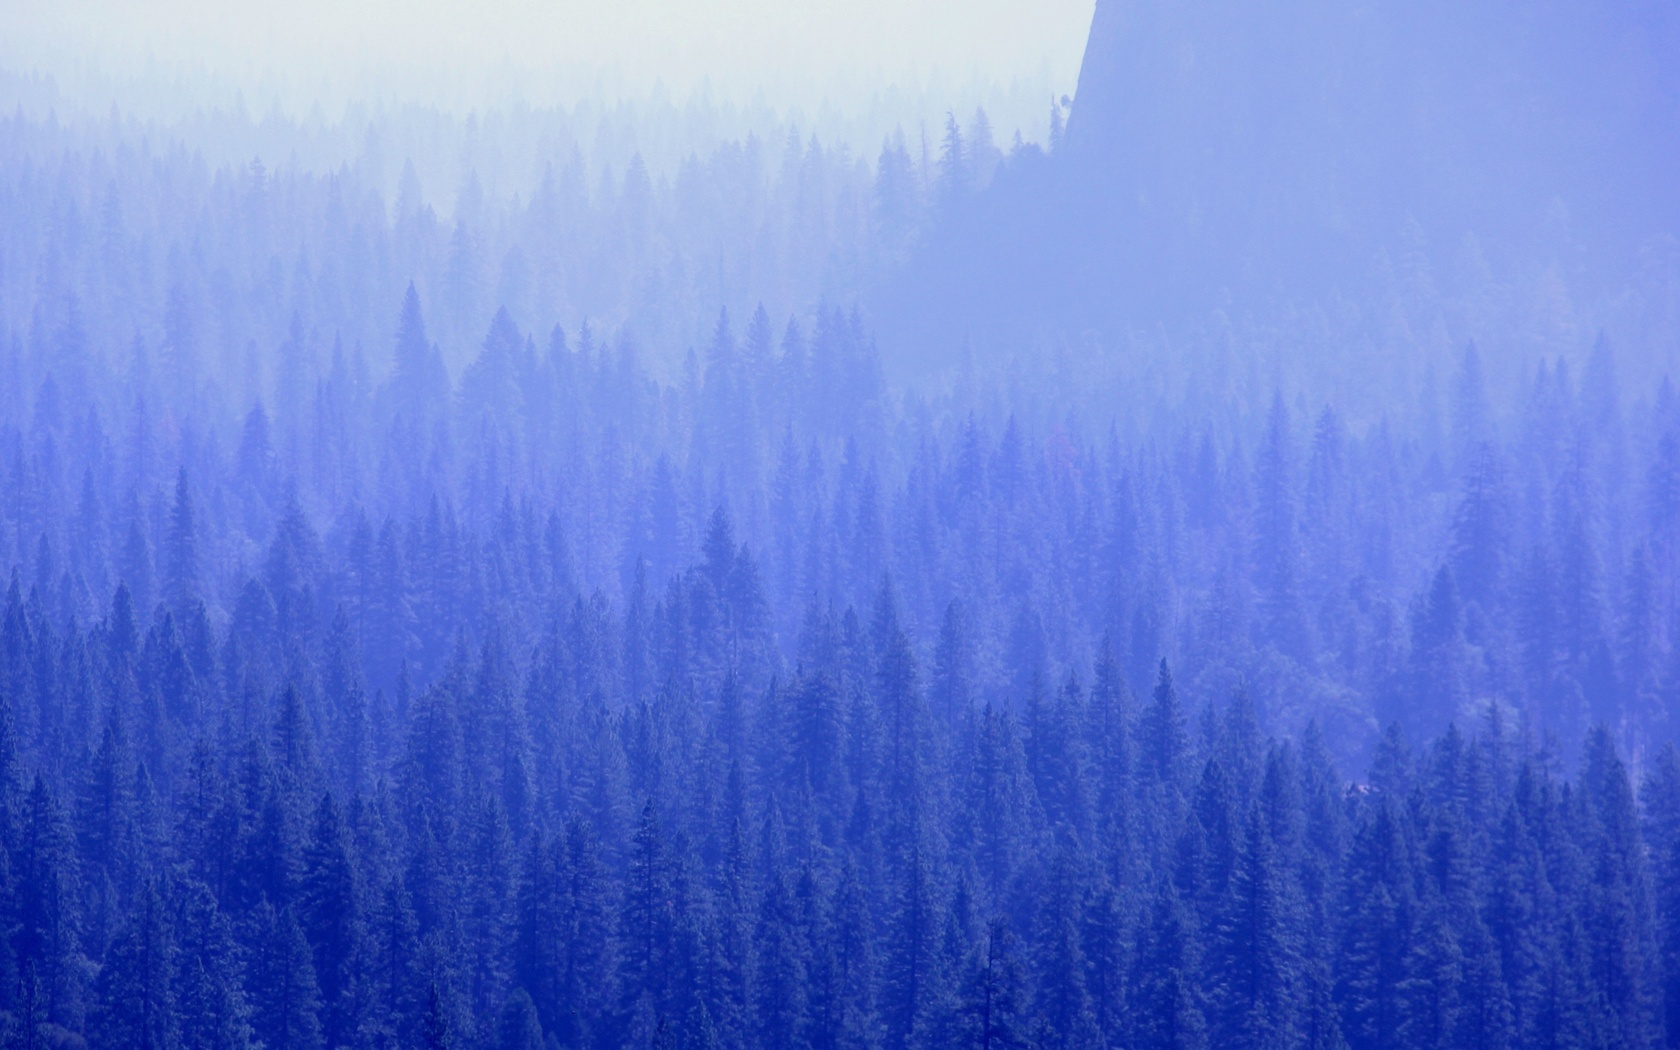 forest-trees-blue-tone-5k-be.jpg